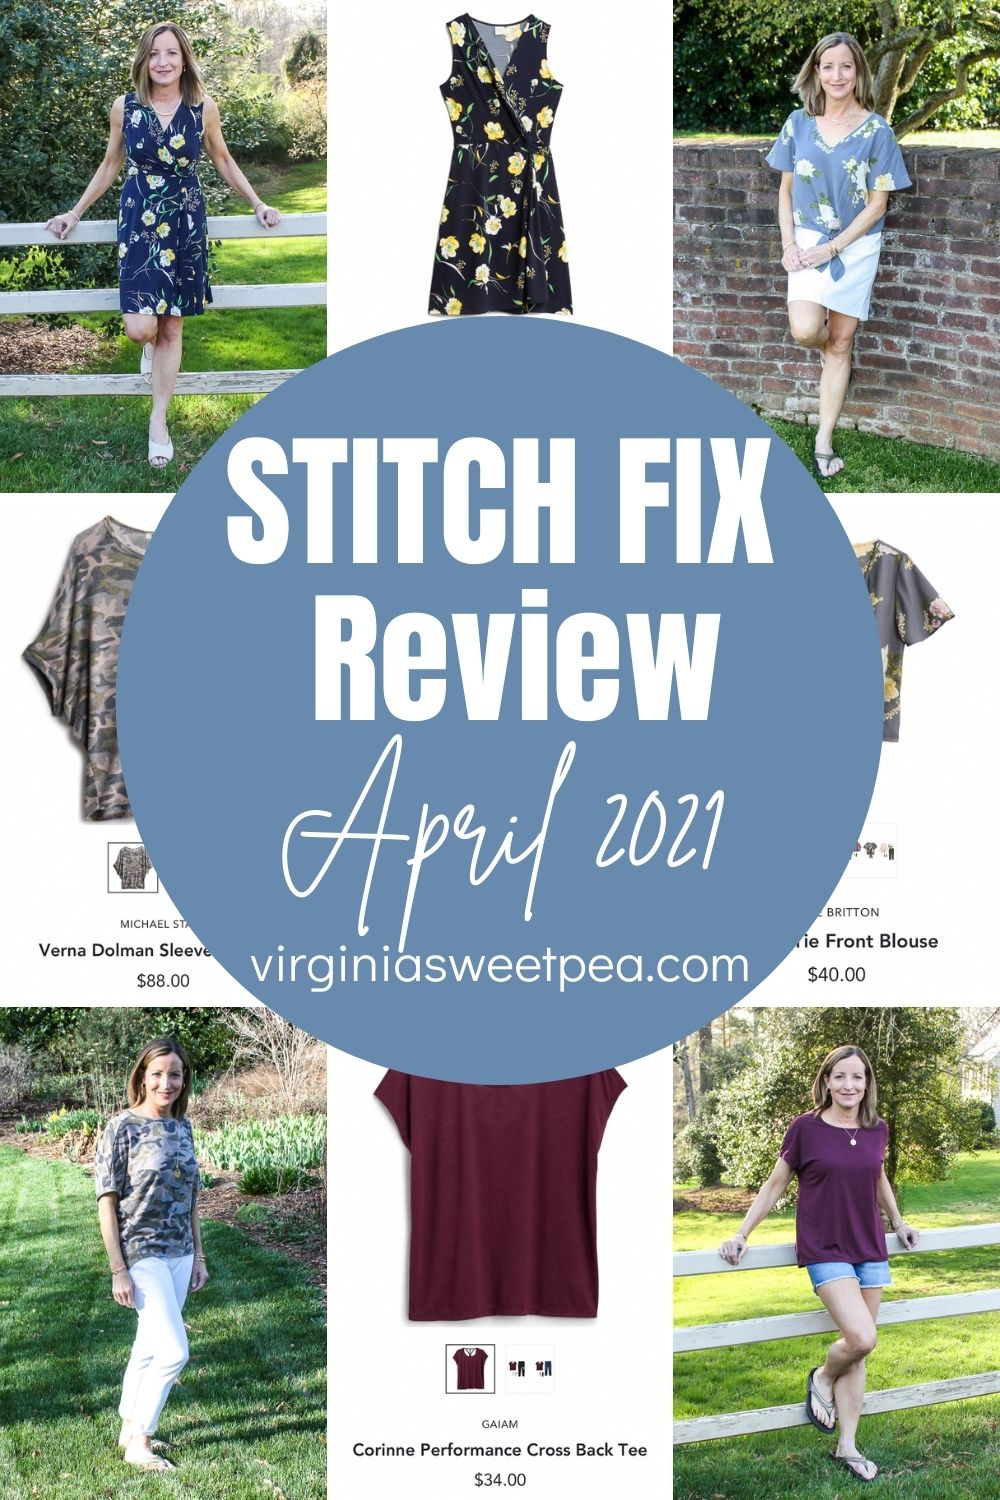 Spring is here and my April Stitch Fix box was filled with fashions to enjoy throughout spring and into summer.  Stitch Fix outfits dominate my wardrobe and the tops, dress, and shorts sent this month are great additions to my wardrobe.  See all the details on each item and get Stitch Fix inspiration for your next box.  #stitchfix #stitchfixreview via @spaula